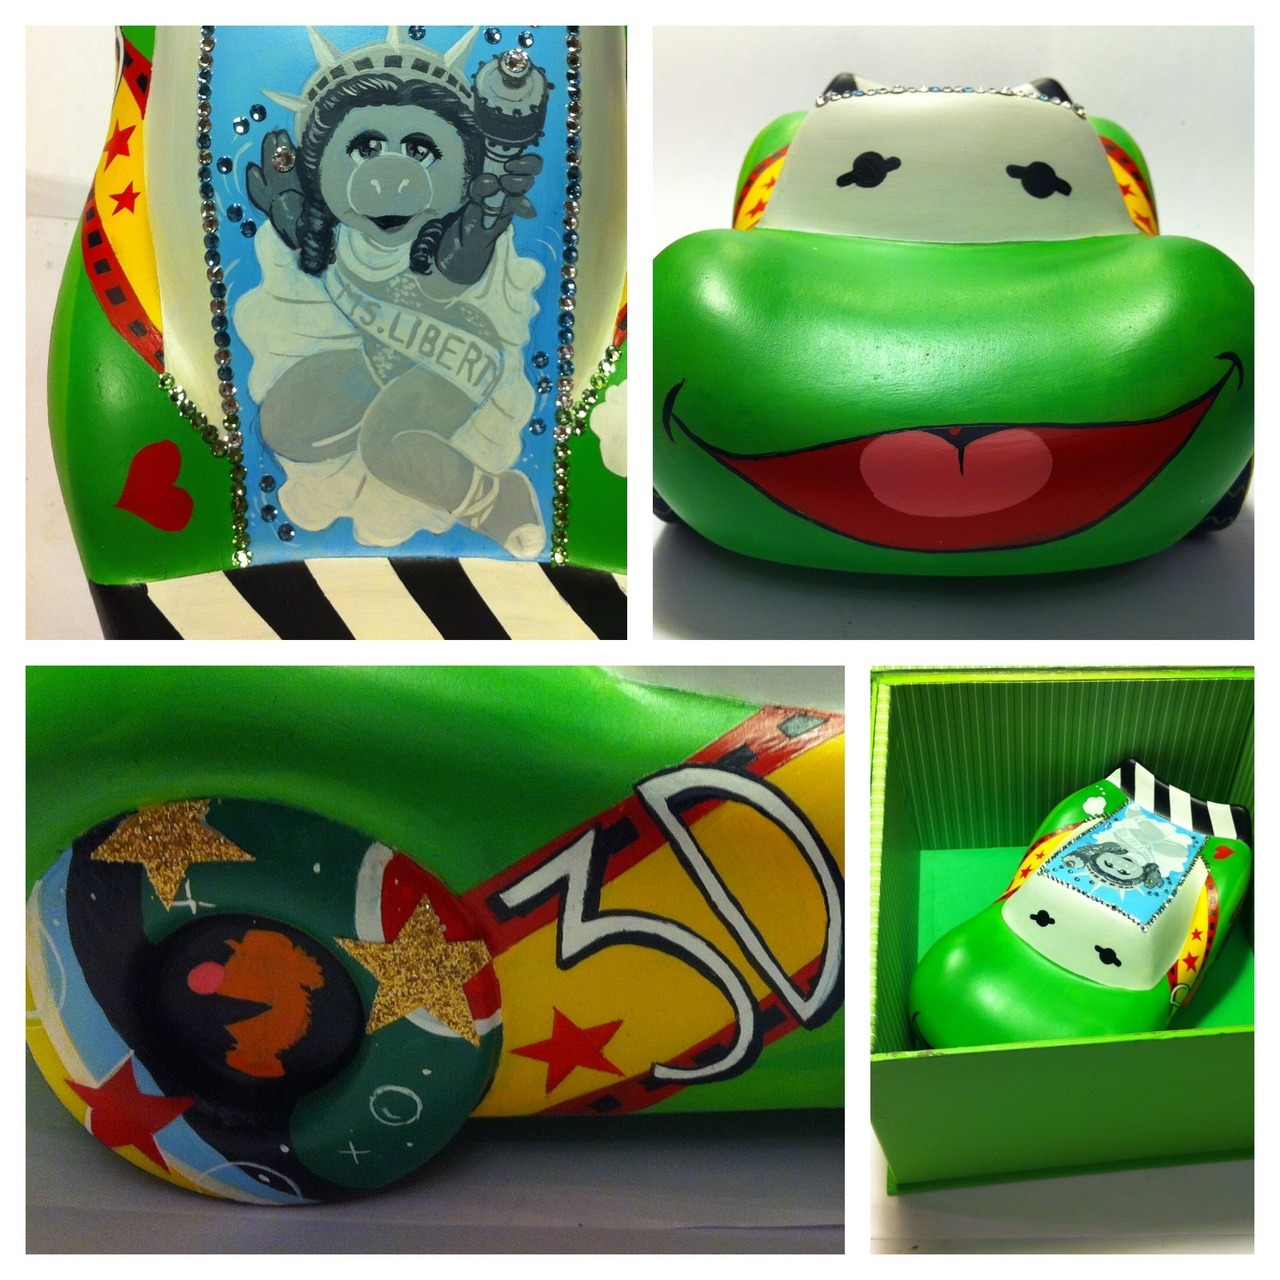 My custom 95 vinylmation for Disney Wonderground gallery! Inspired by Muppetvision 3D